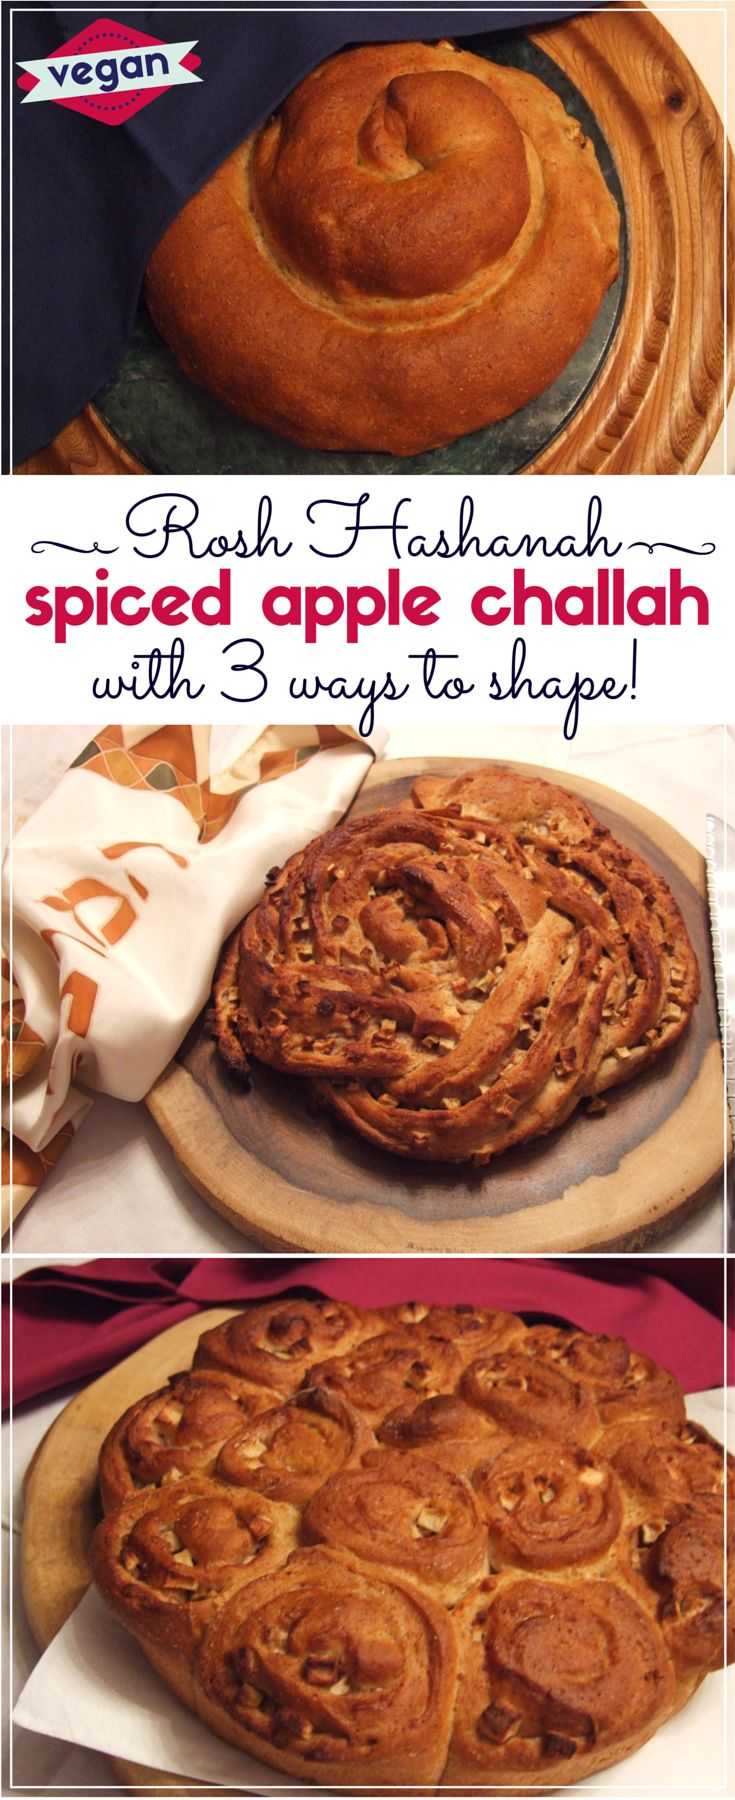 Tasty vegan challah dough is wrapped around a delicious spiced apple filling to create sensational autumn-inspired challah! Perfect for Rosh Hashanah (Jewish New Year). Plus easy directions for 3 beautiful ways to shape your loaf.